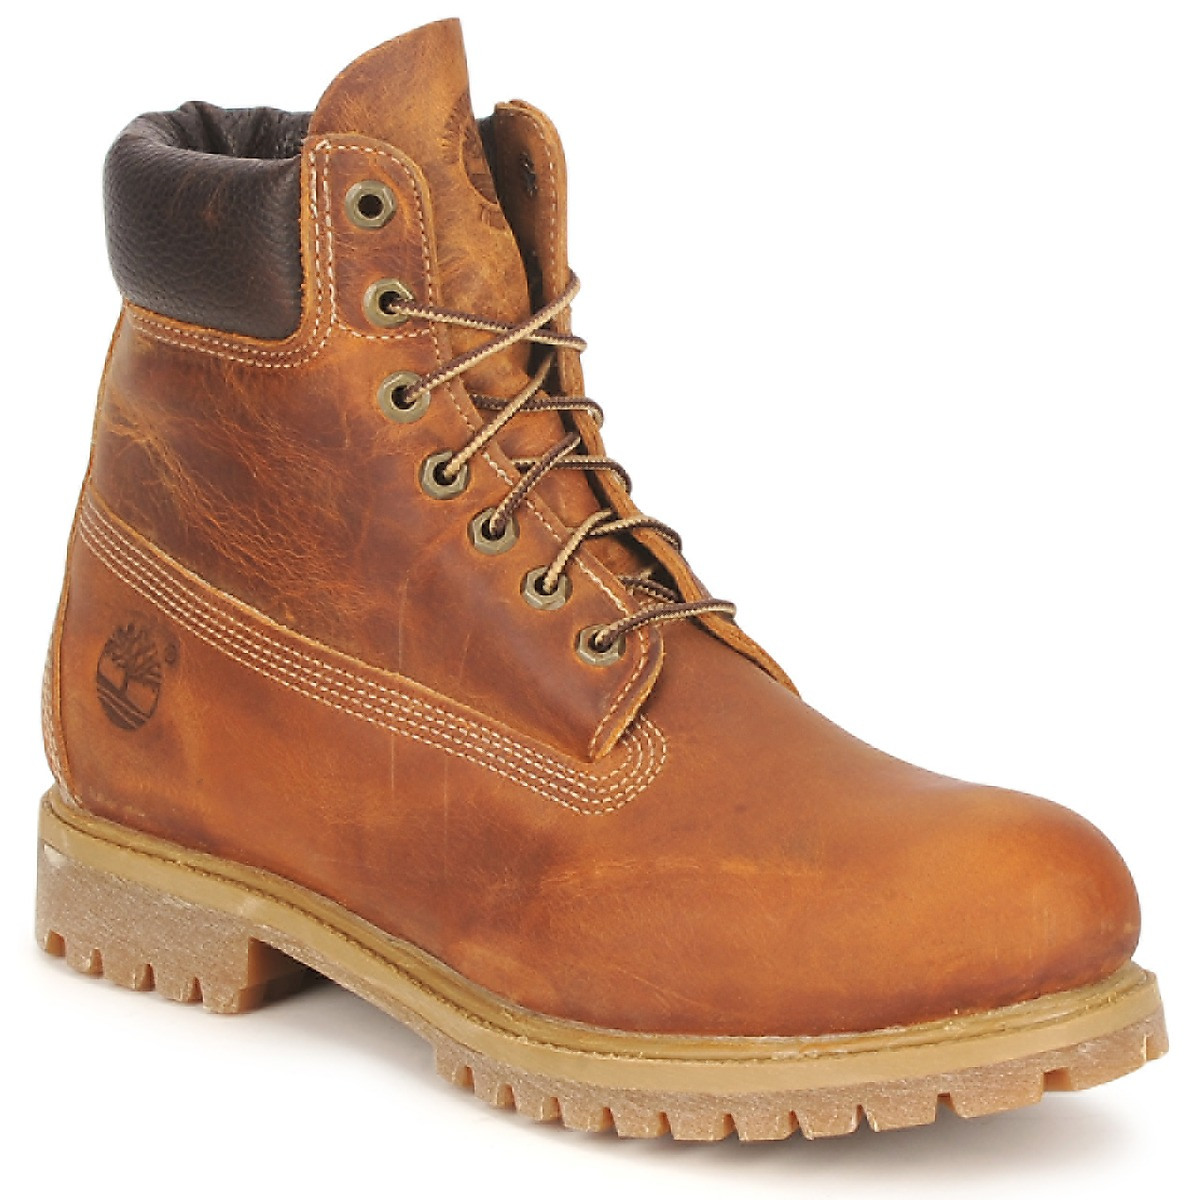 HERITAGE 6 IN PREMIUMTimberland Browse Vente Pas Cher tQaYKgJL